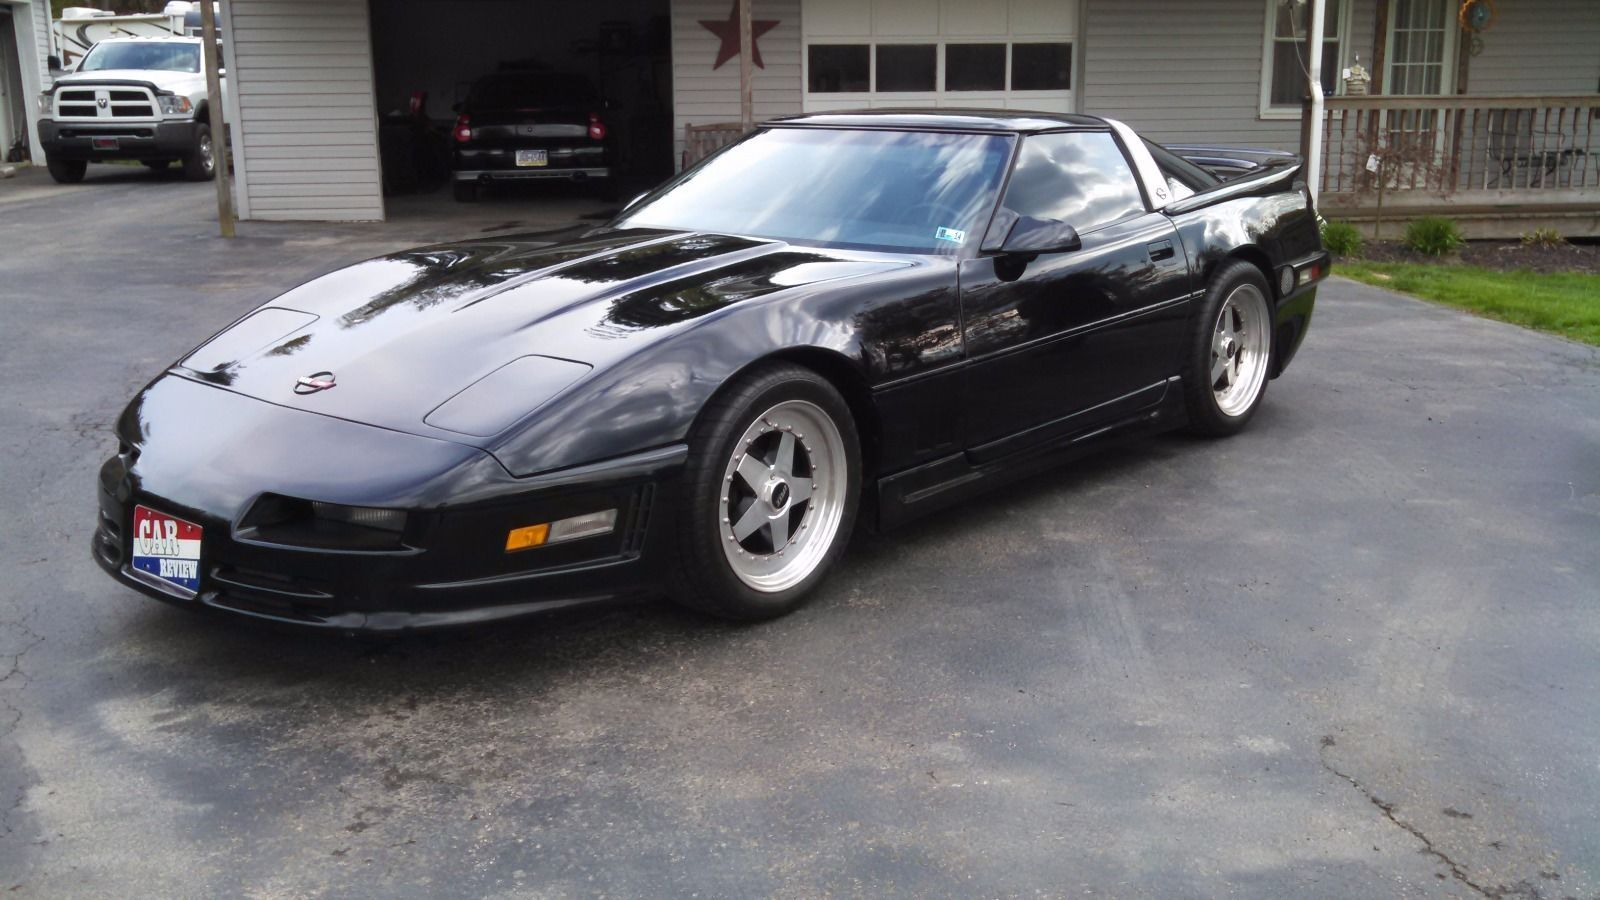 1984 Chevrolet Corvette custom | Custom cars for sale | Pinterest ...